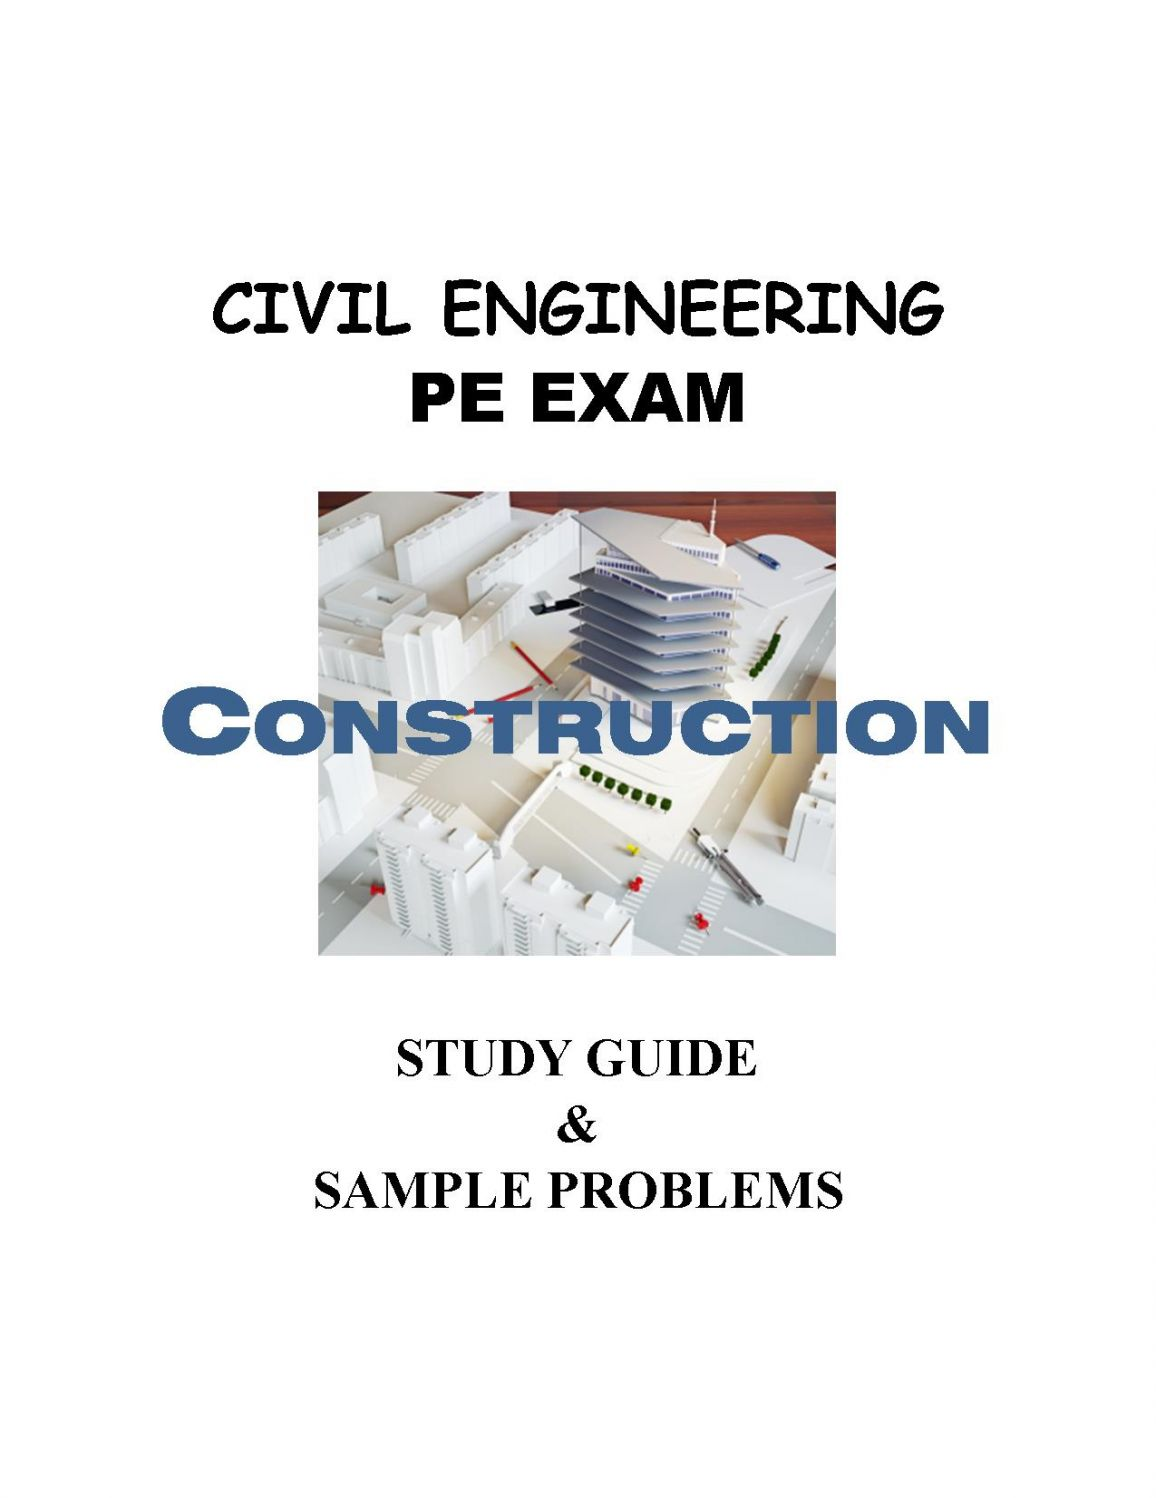 Civil Service Examination Study Guides - amazon.com